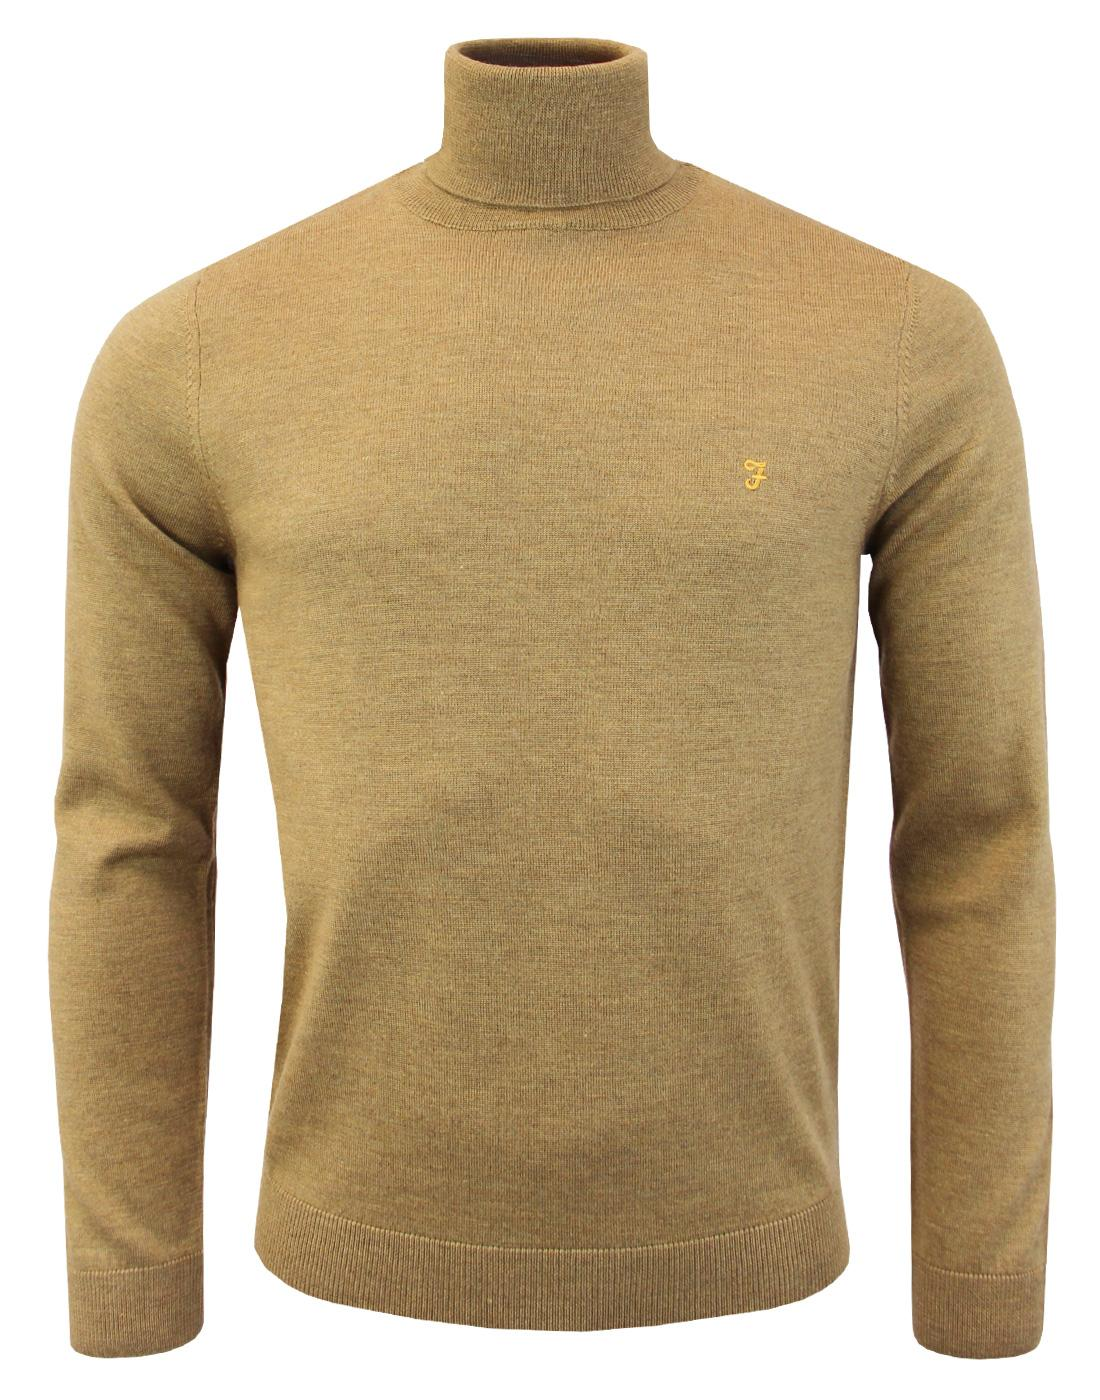 Gosforth FARAH Mod Merino Roll Neck Jumper CAMEL